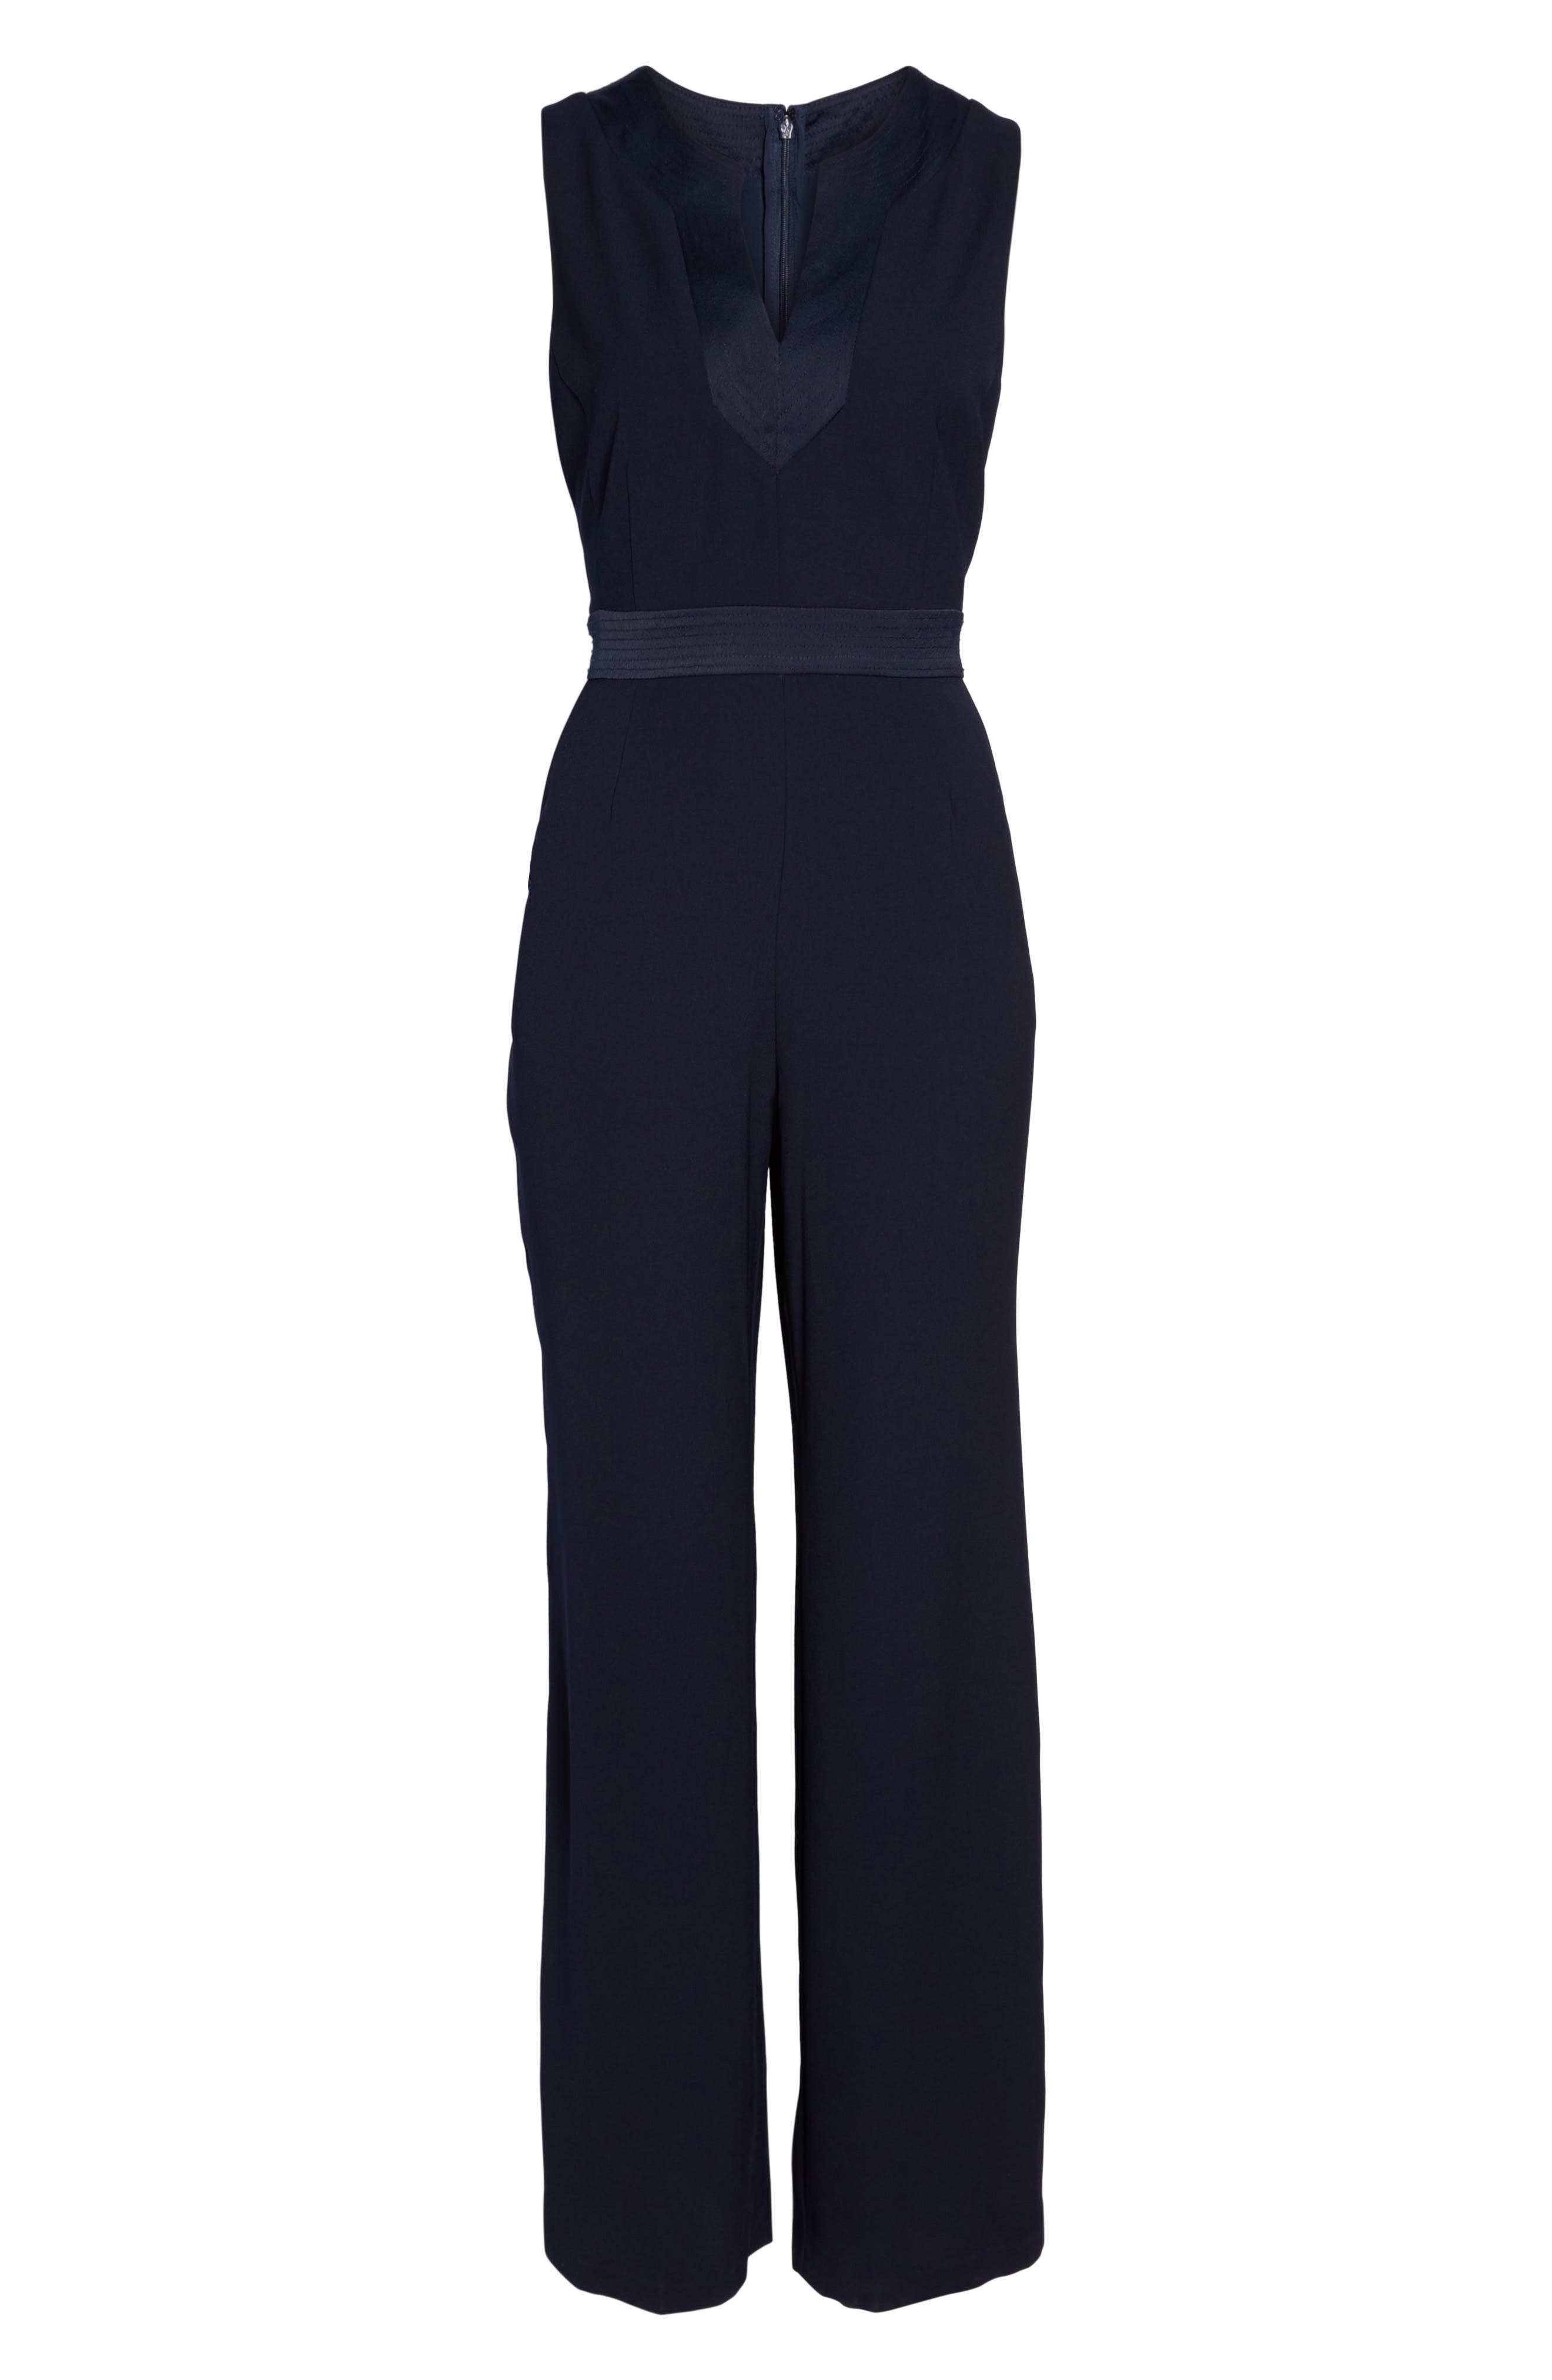 Sleeveless Jumpsuit,                             Alternate thumbnail 6, color,                             410